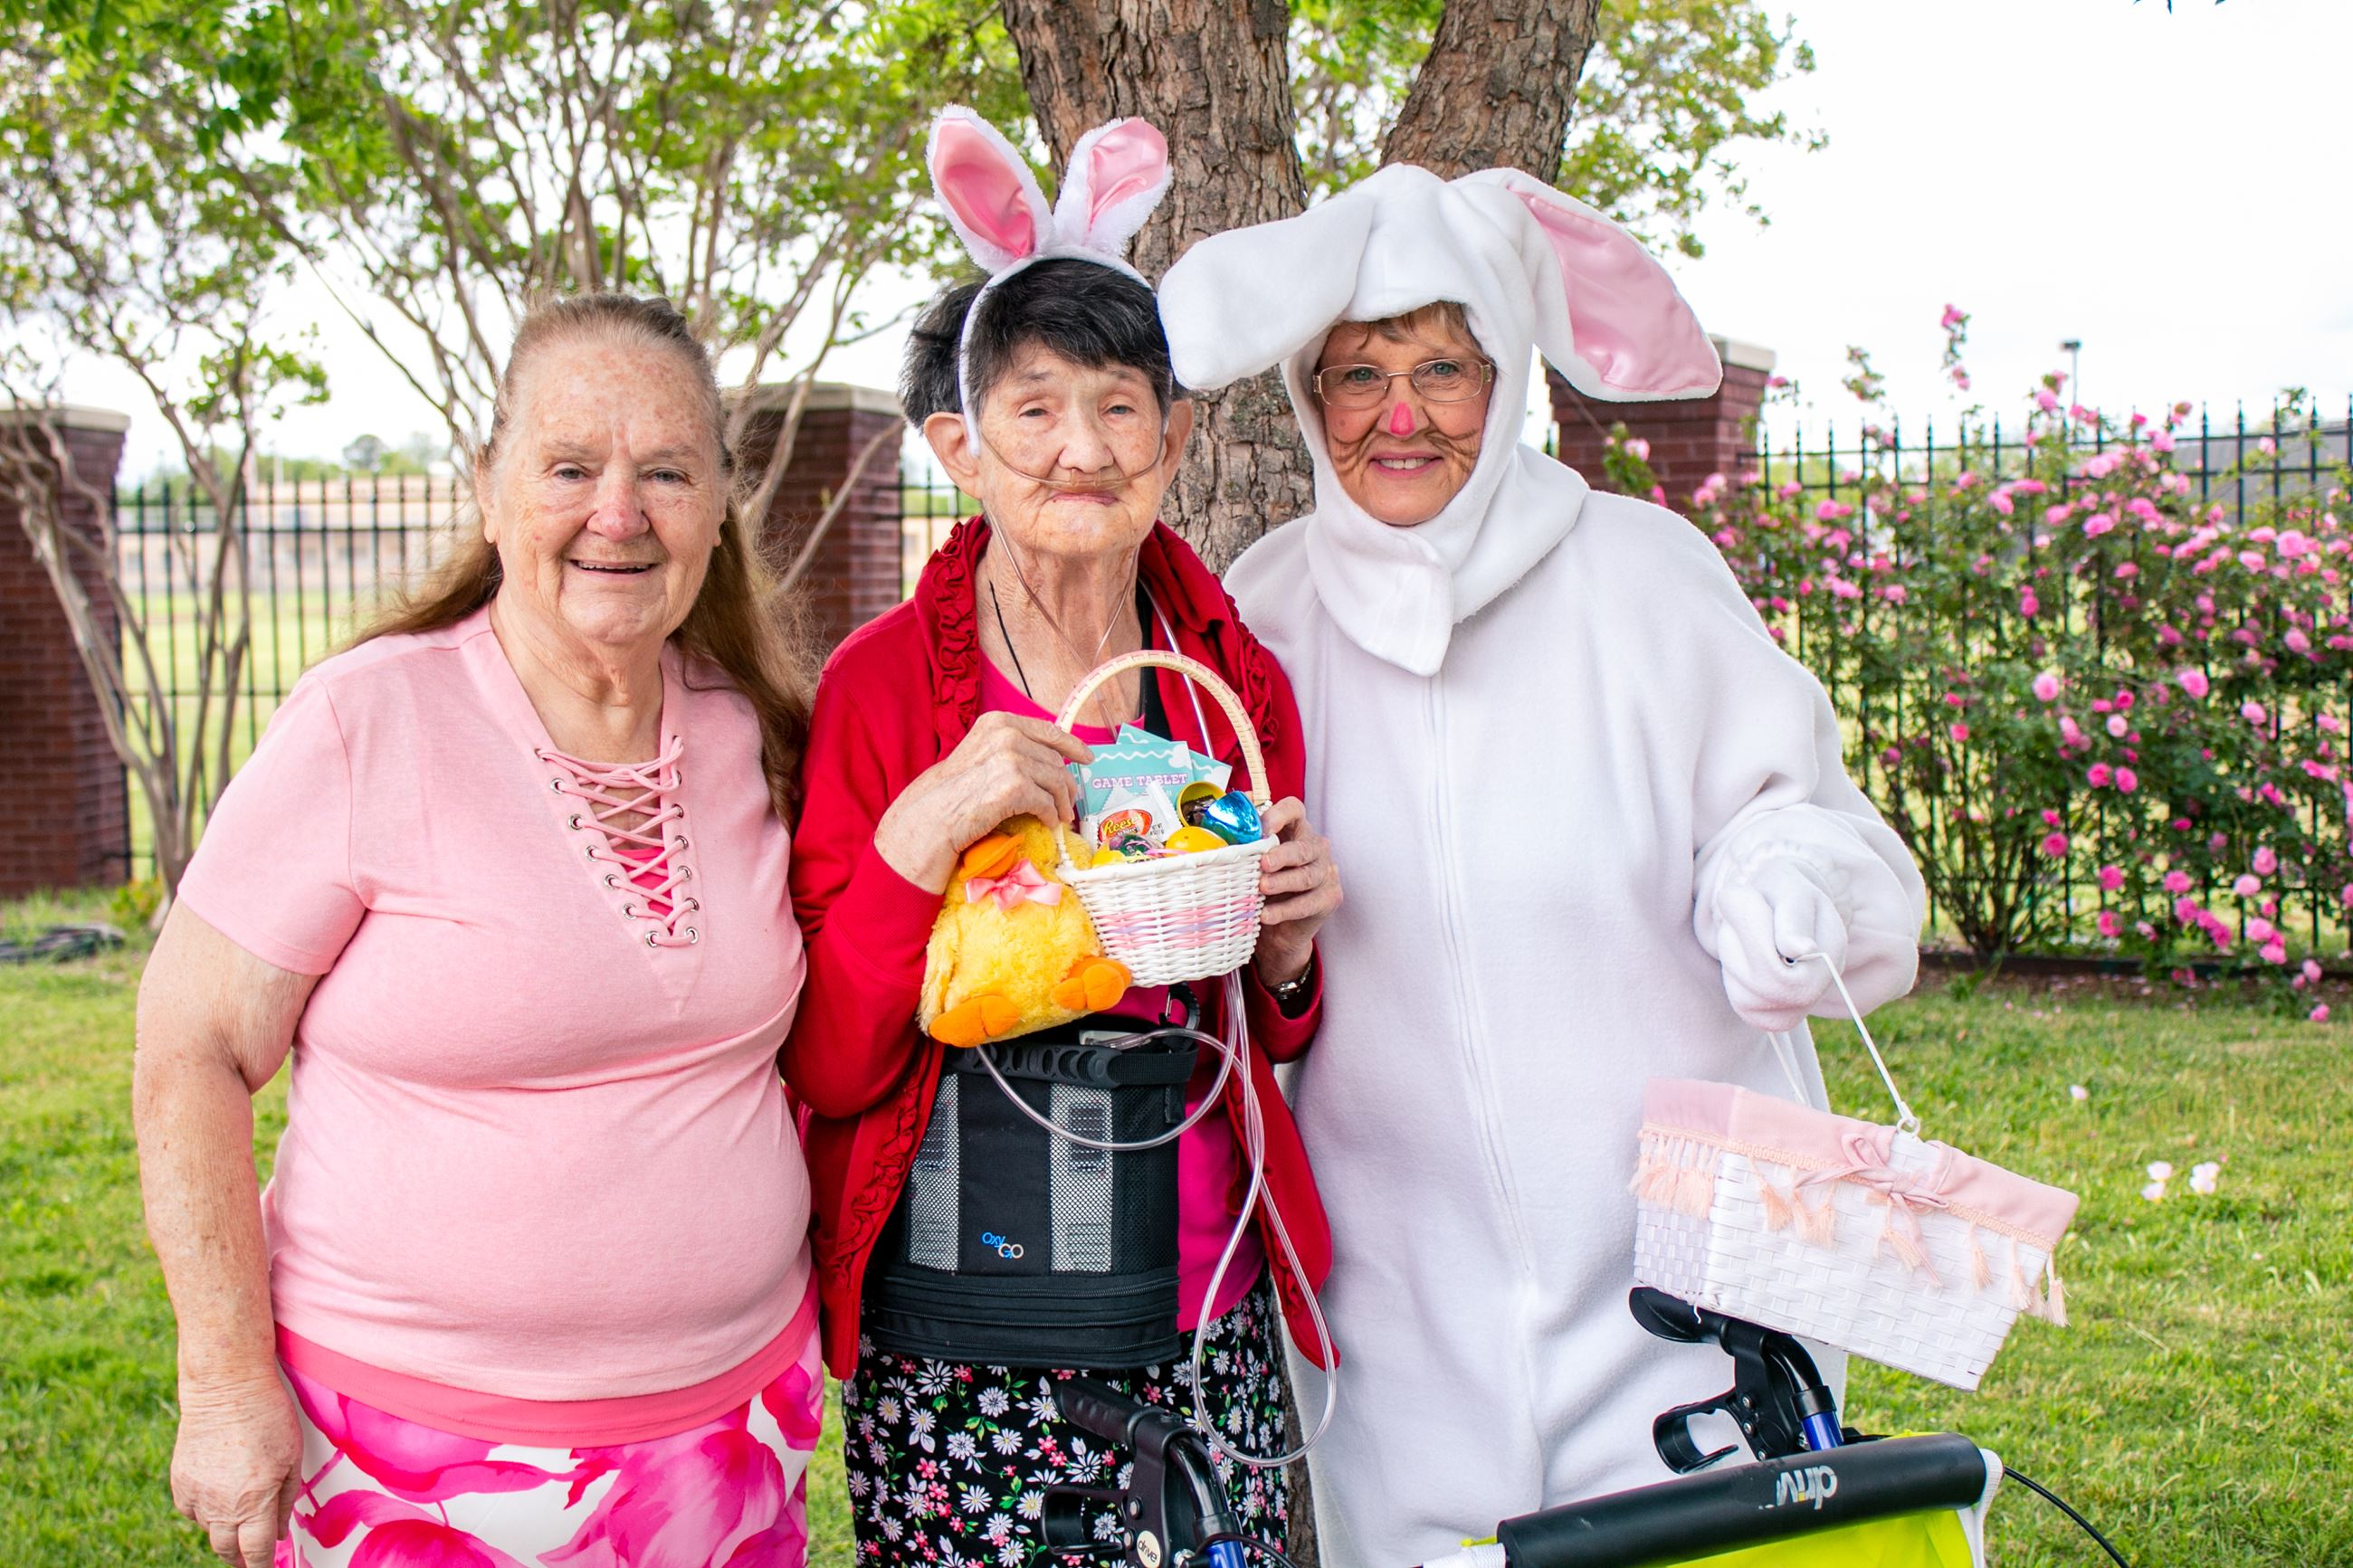 Easter Egg Hunt at Rose Senior Center